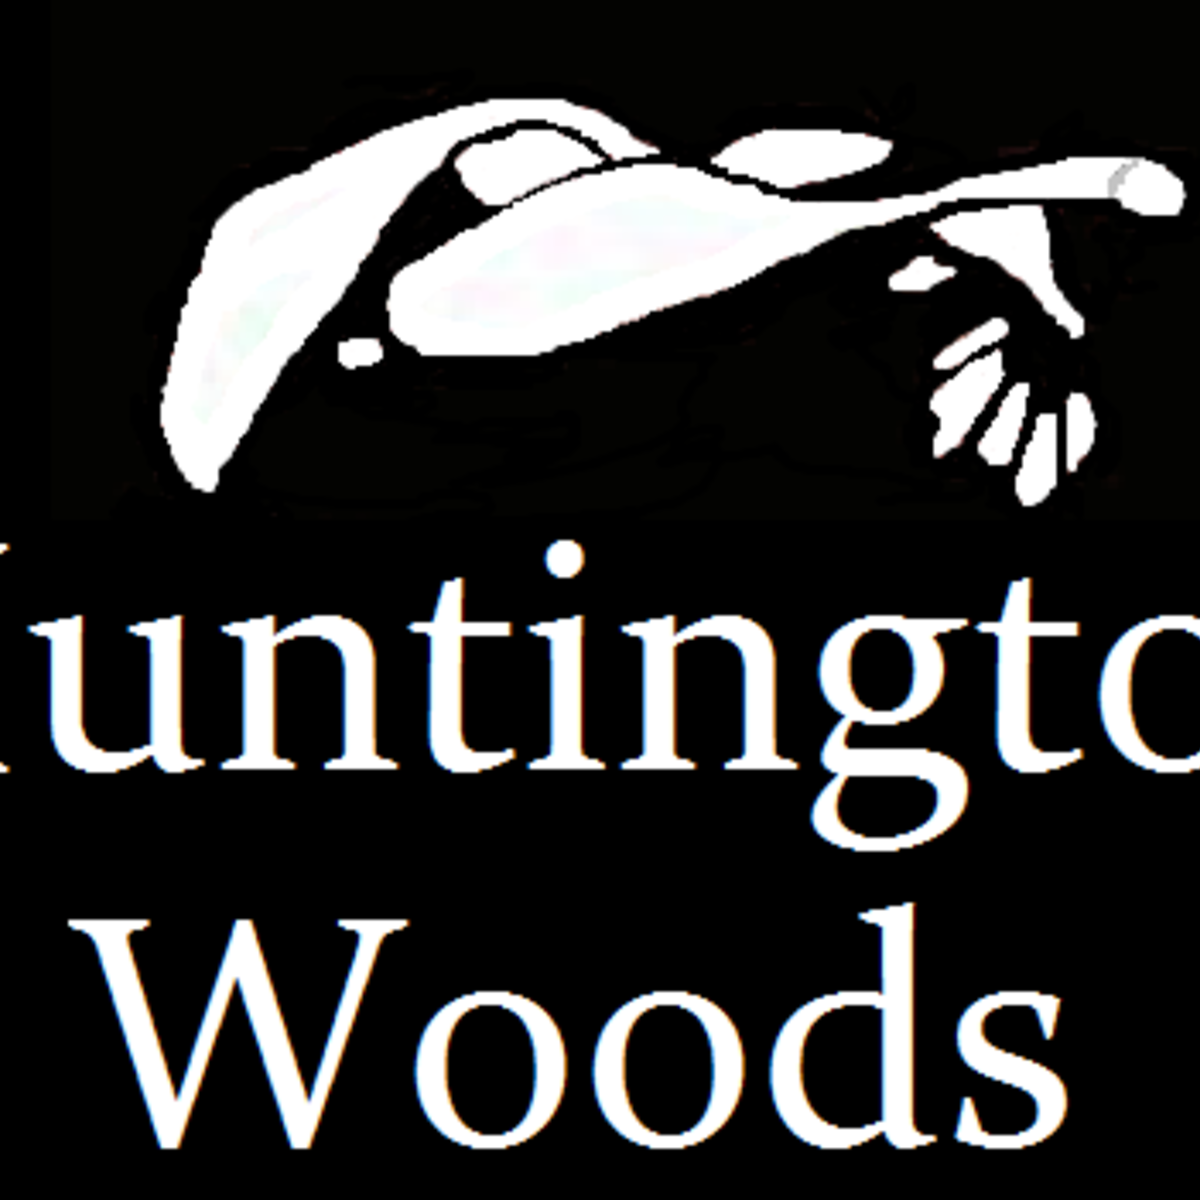 Huntington Woods Apartments: Huntington Woods Apartments In Friendswood, TX